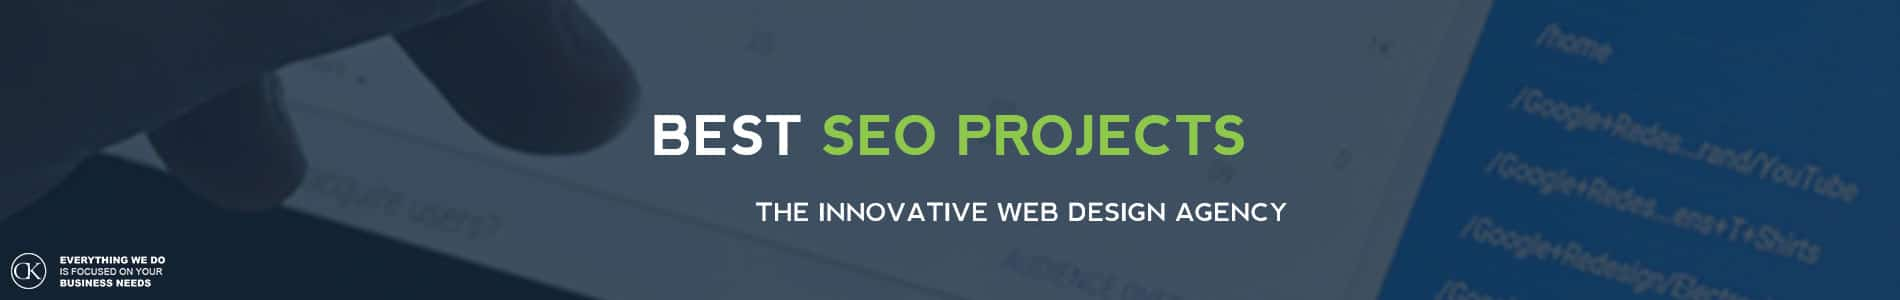 Best SEO projects by CK website design